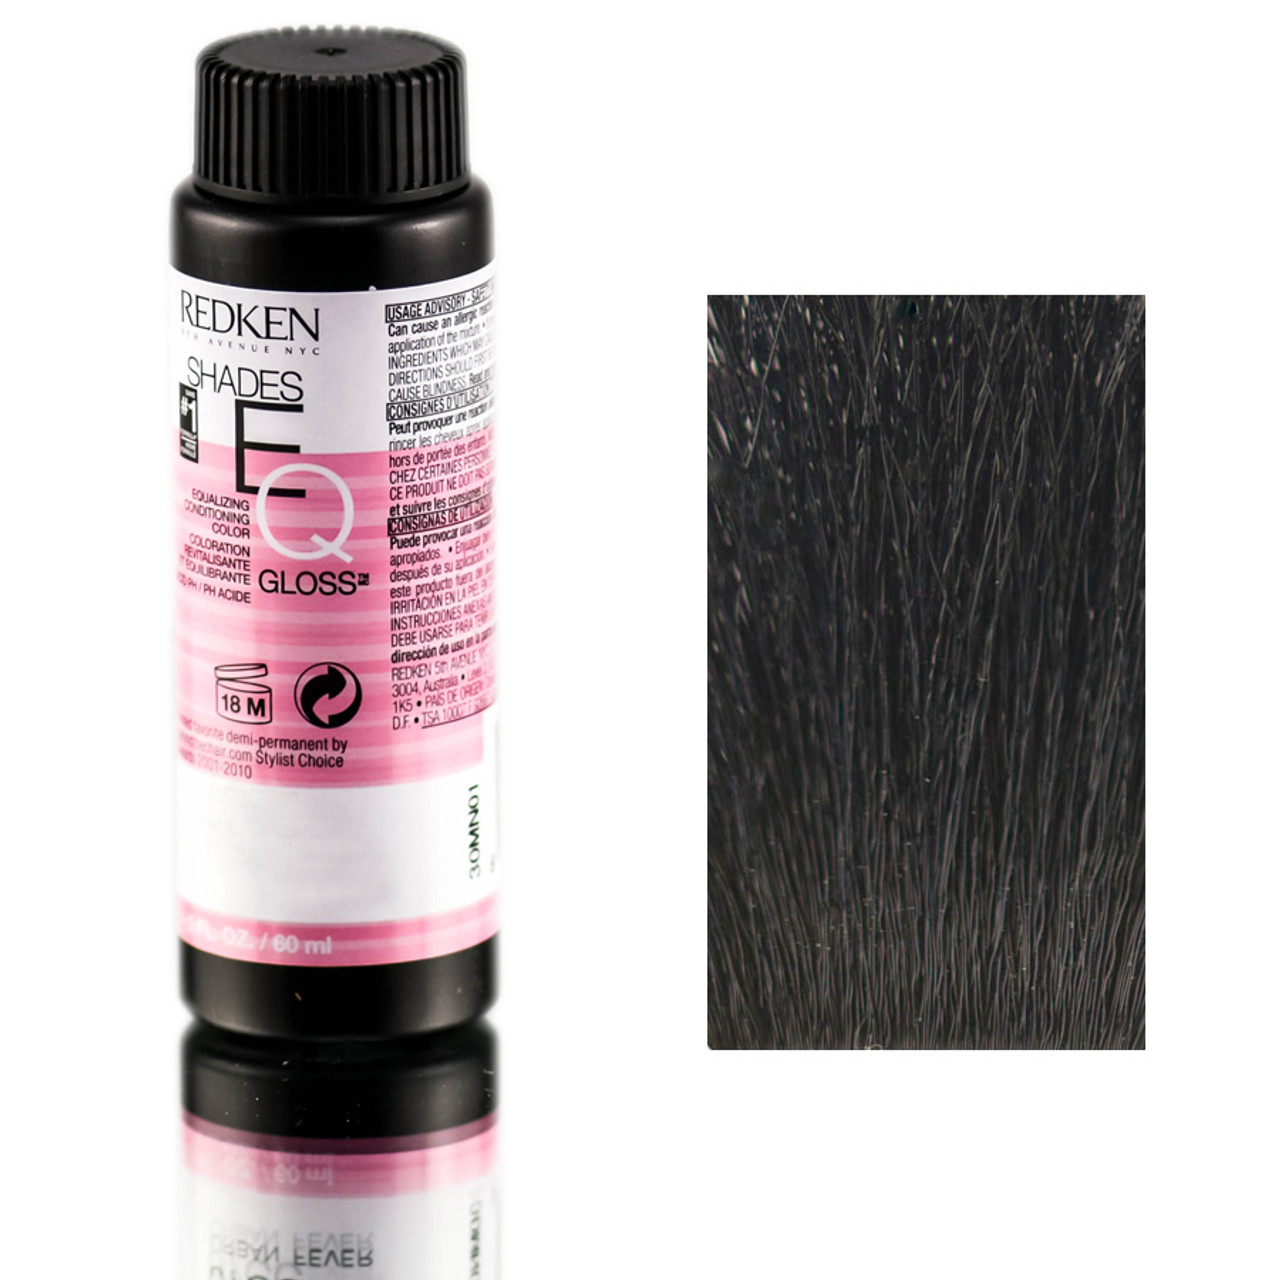 Redken Shades Eq Equalizing Conditioning Color Gloss Sleekshop